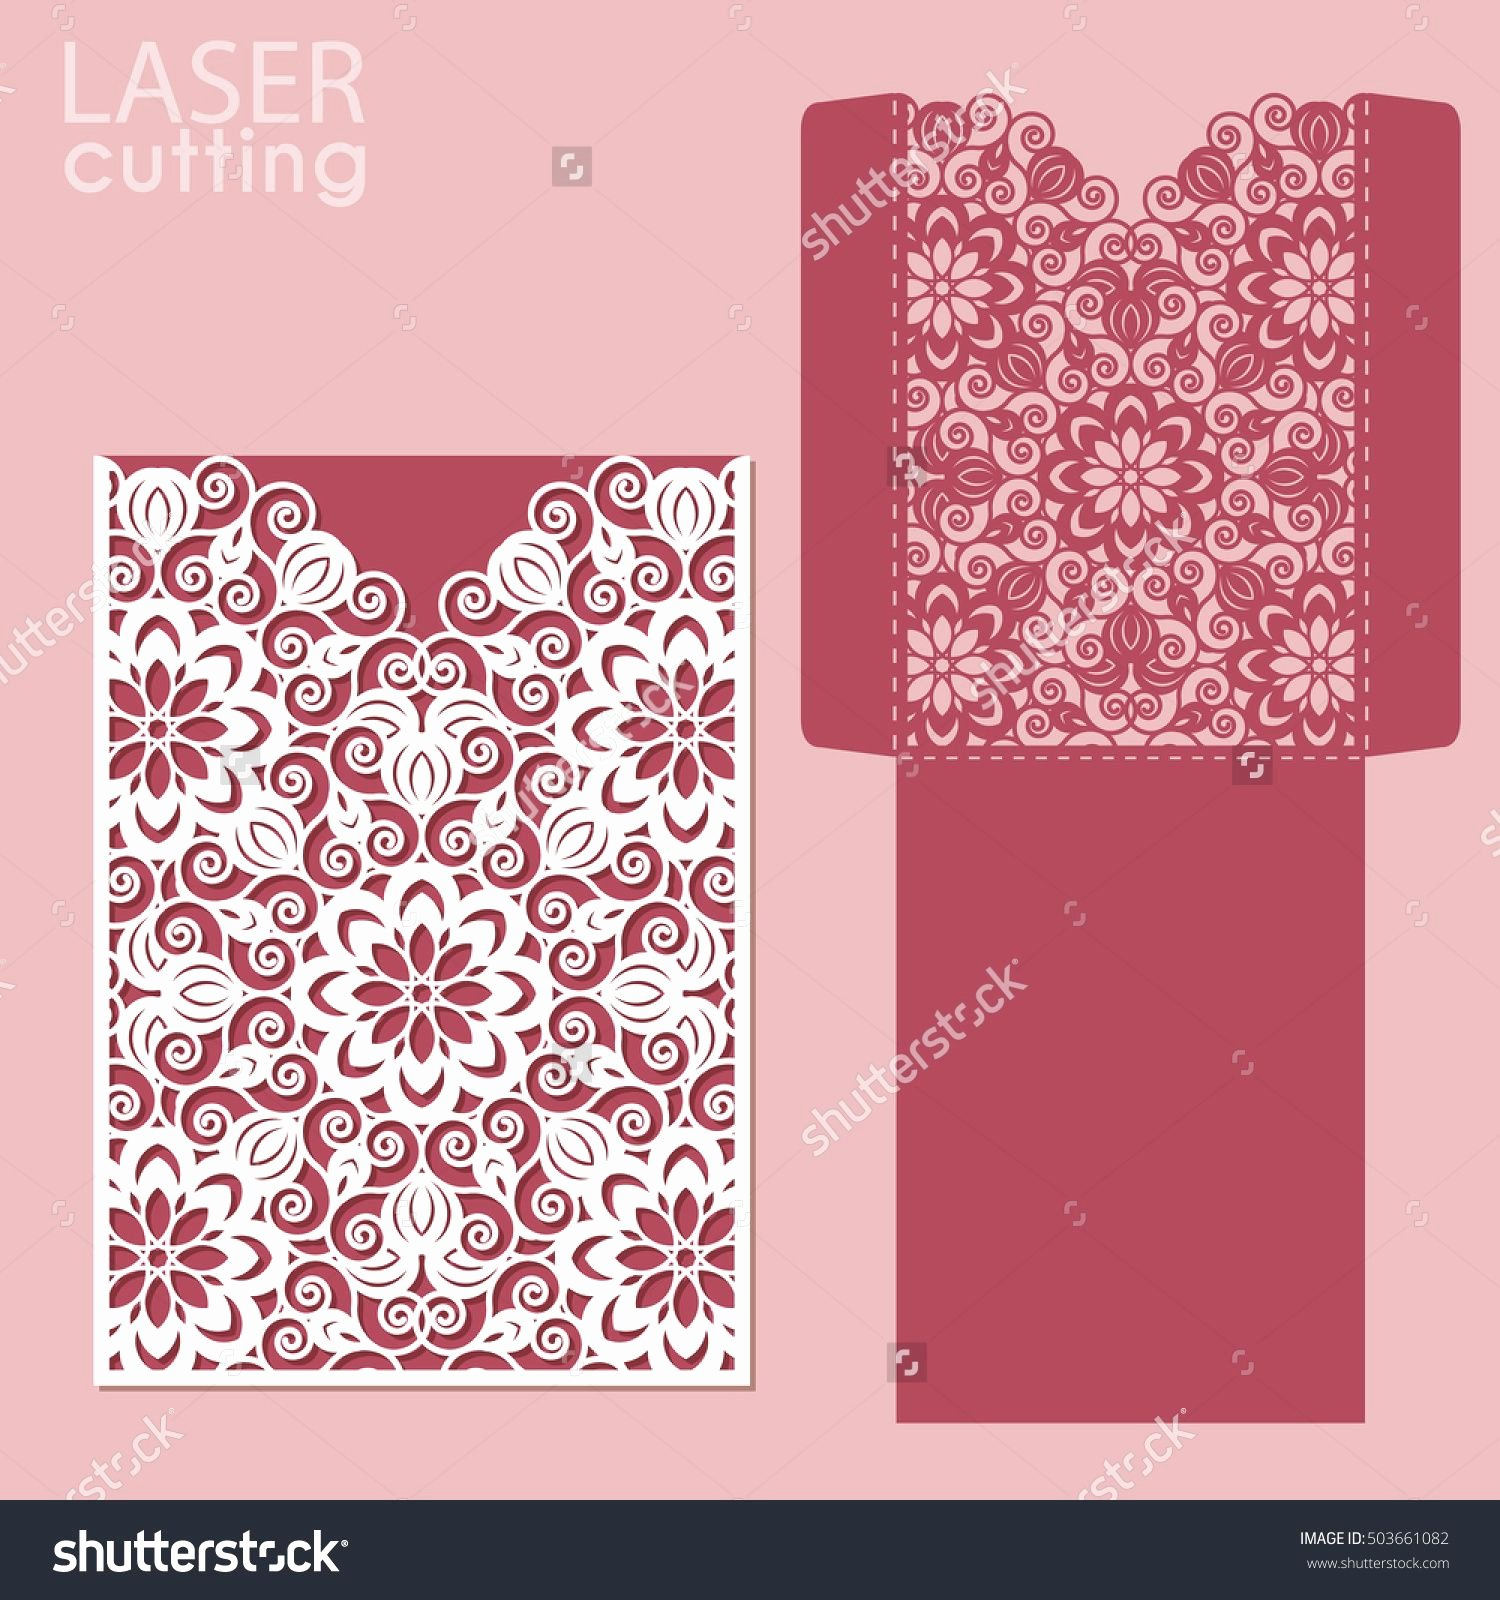 Wedding Envelope Printing Template Awesome Die Laser Cut Wedding Card Vector Template Invitation